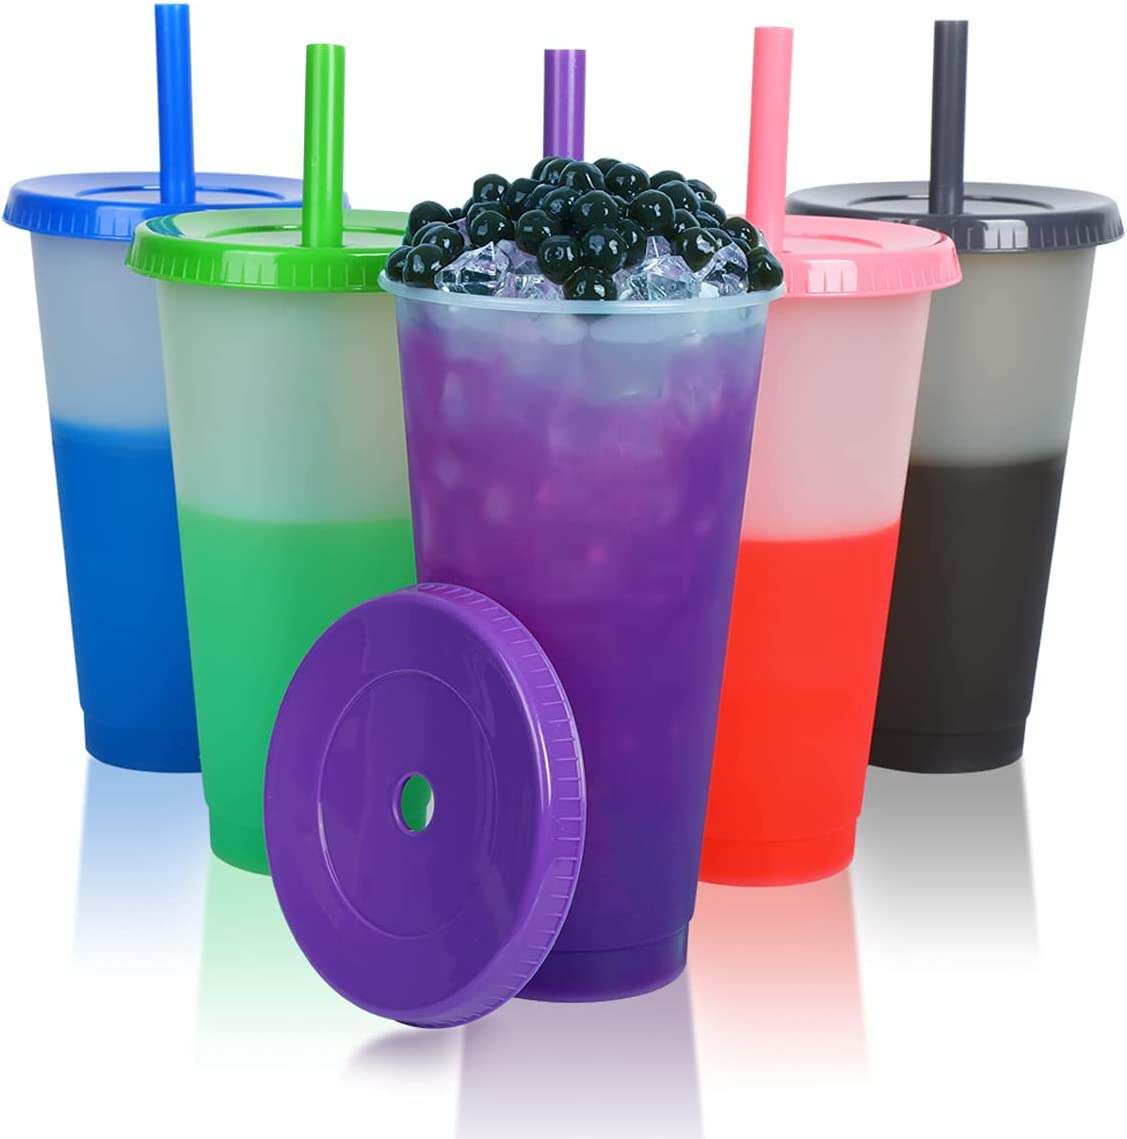 32oz Color Changing Cups with Lids & Straws - 5 Pack Reusable Party Cold Drinking Cup for Kids & Adults - Plastic Beverage Juice Smoothie Iced Coffee Tumbler Bulk with Boba Straw